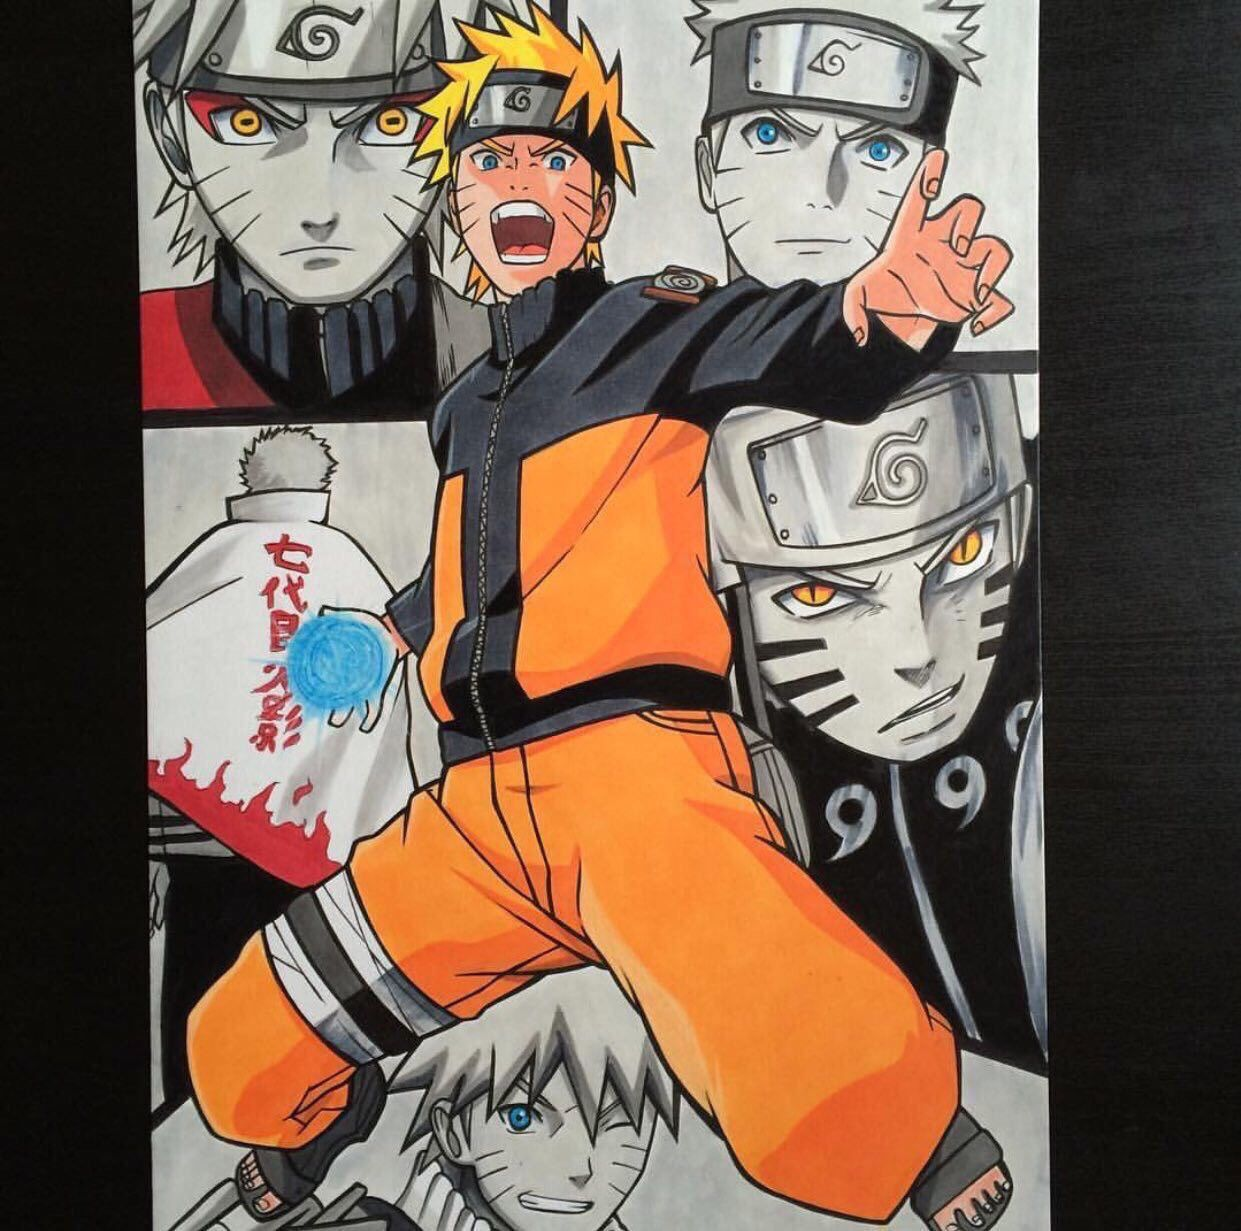 Pin by Mirian L. on Anime & Cartoons Naruto sketch